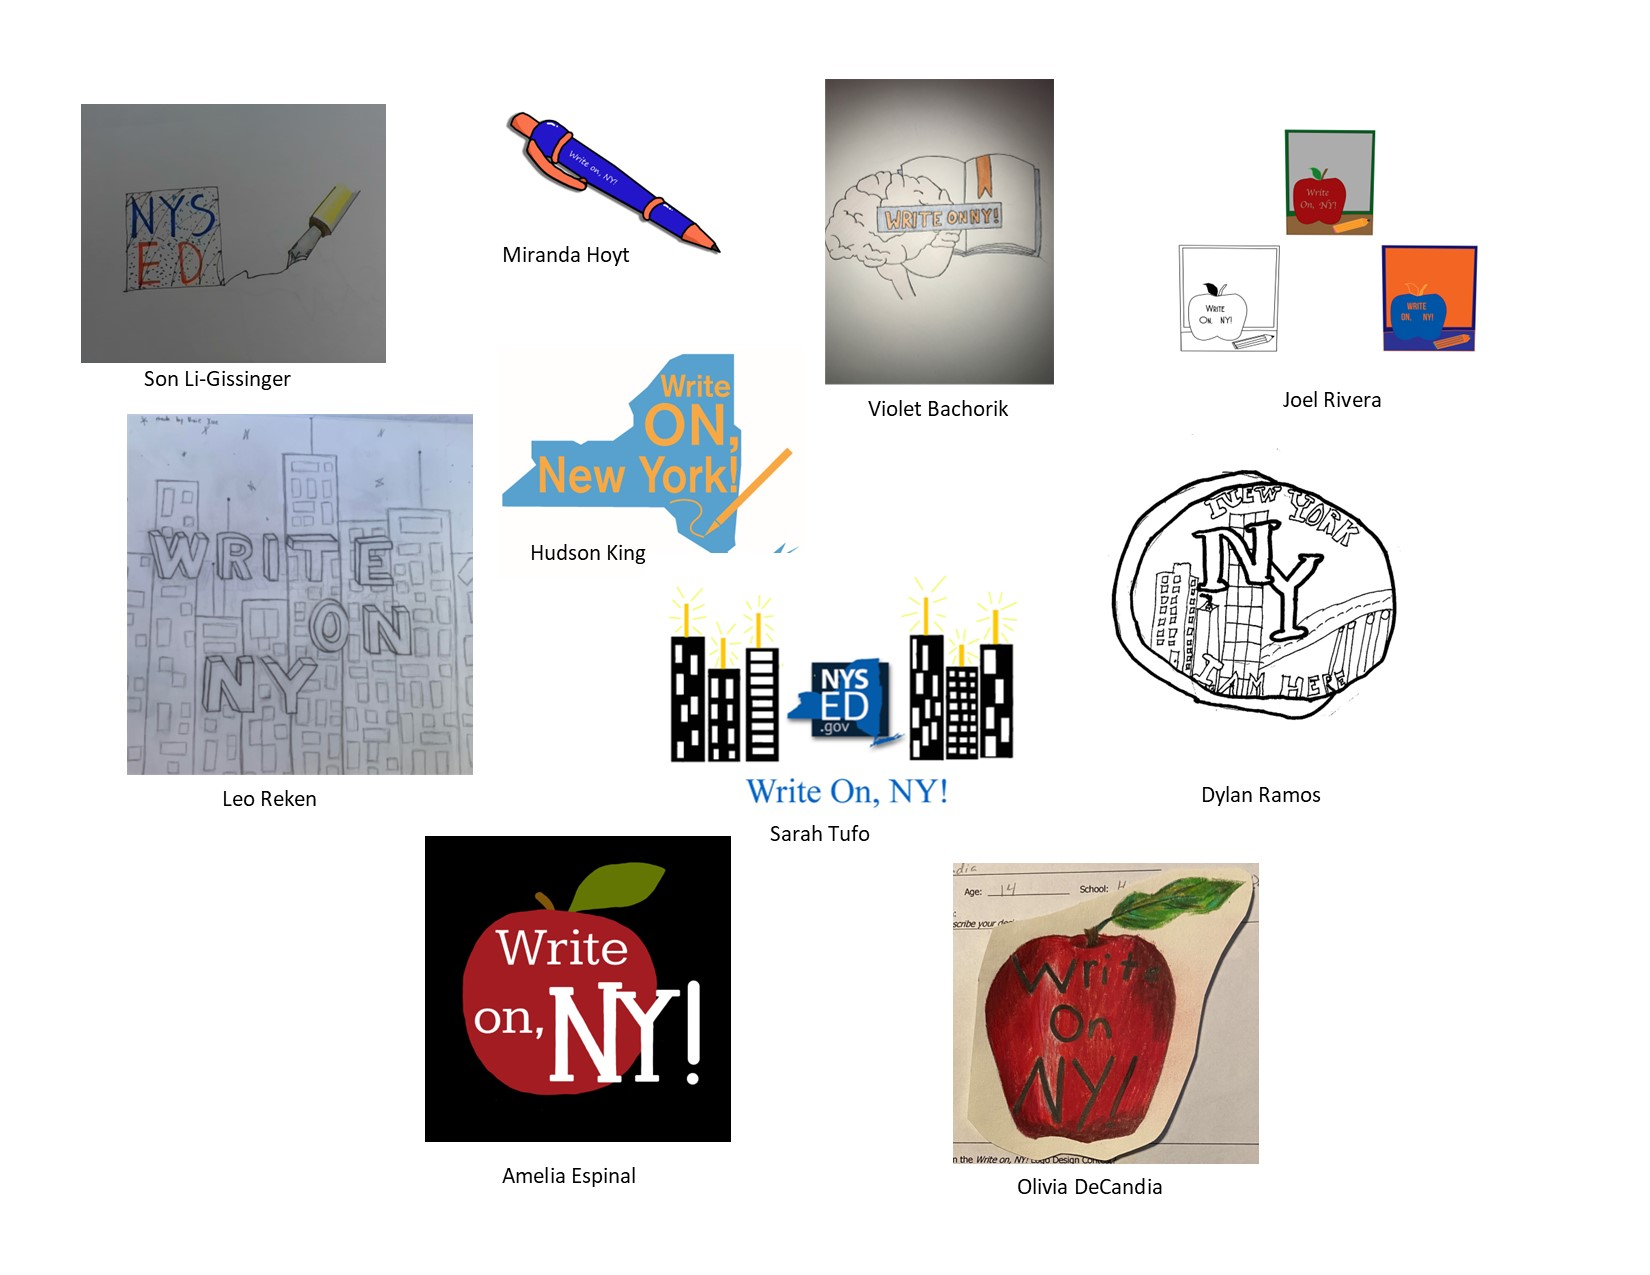 Images of student artwork